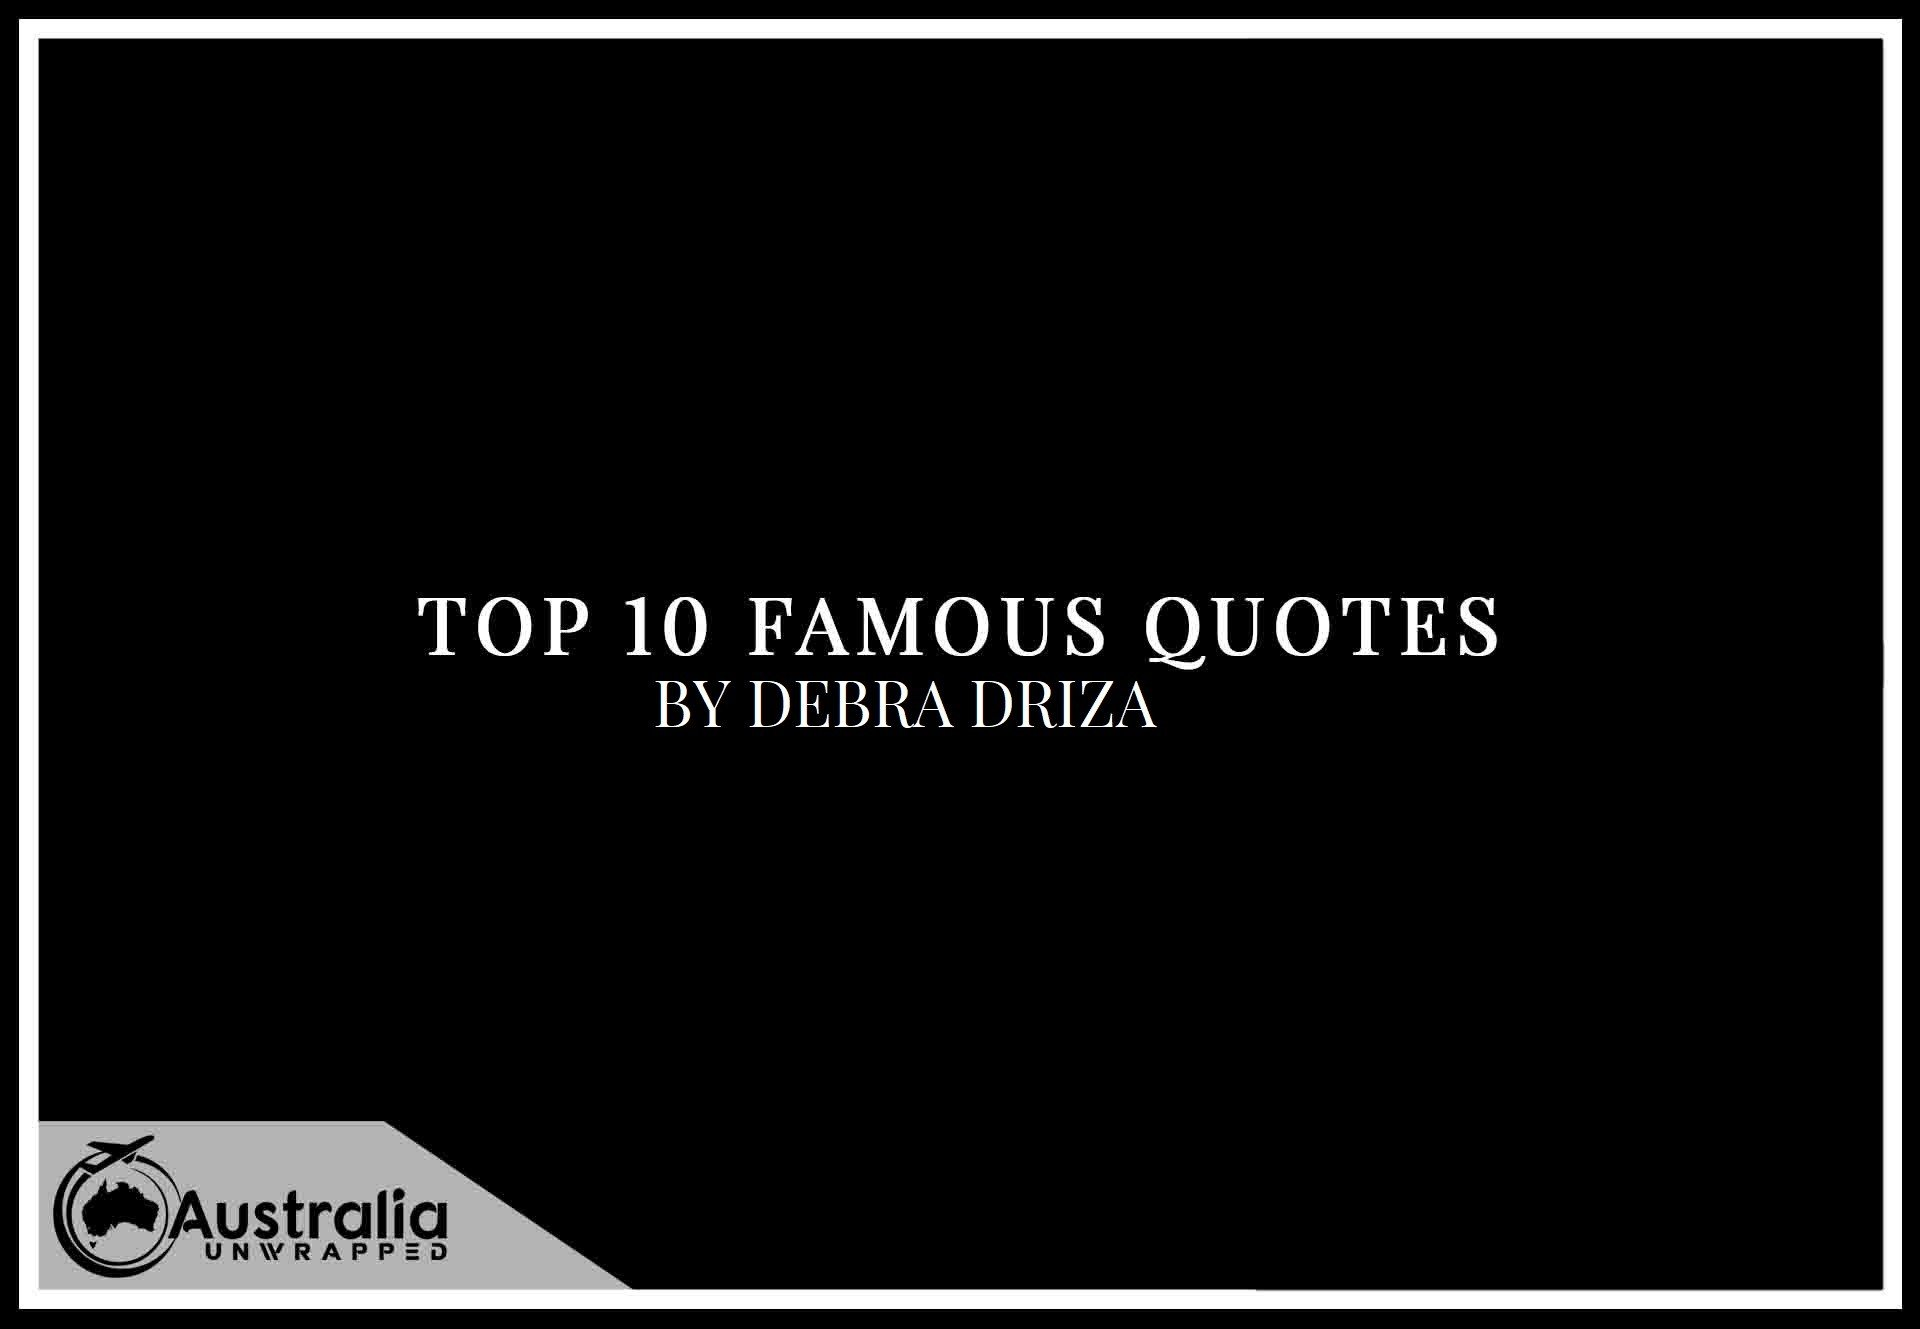 Top 10 Famous Quotes by Author Debra Driza